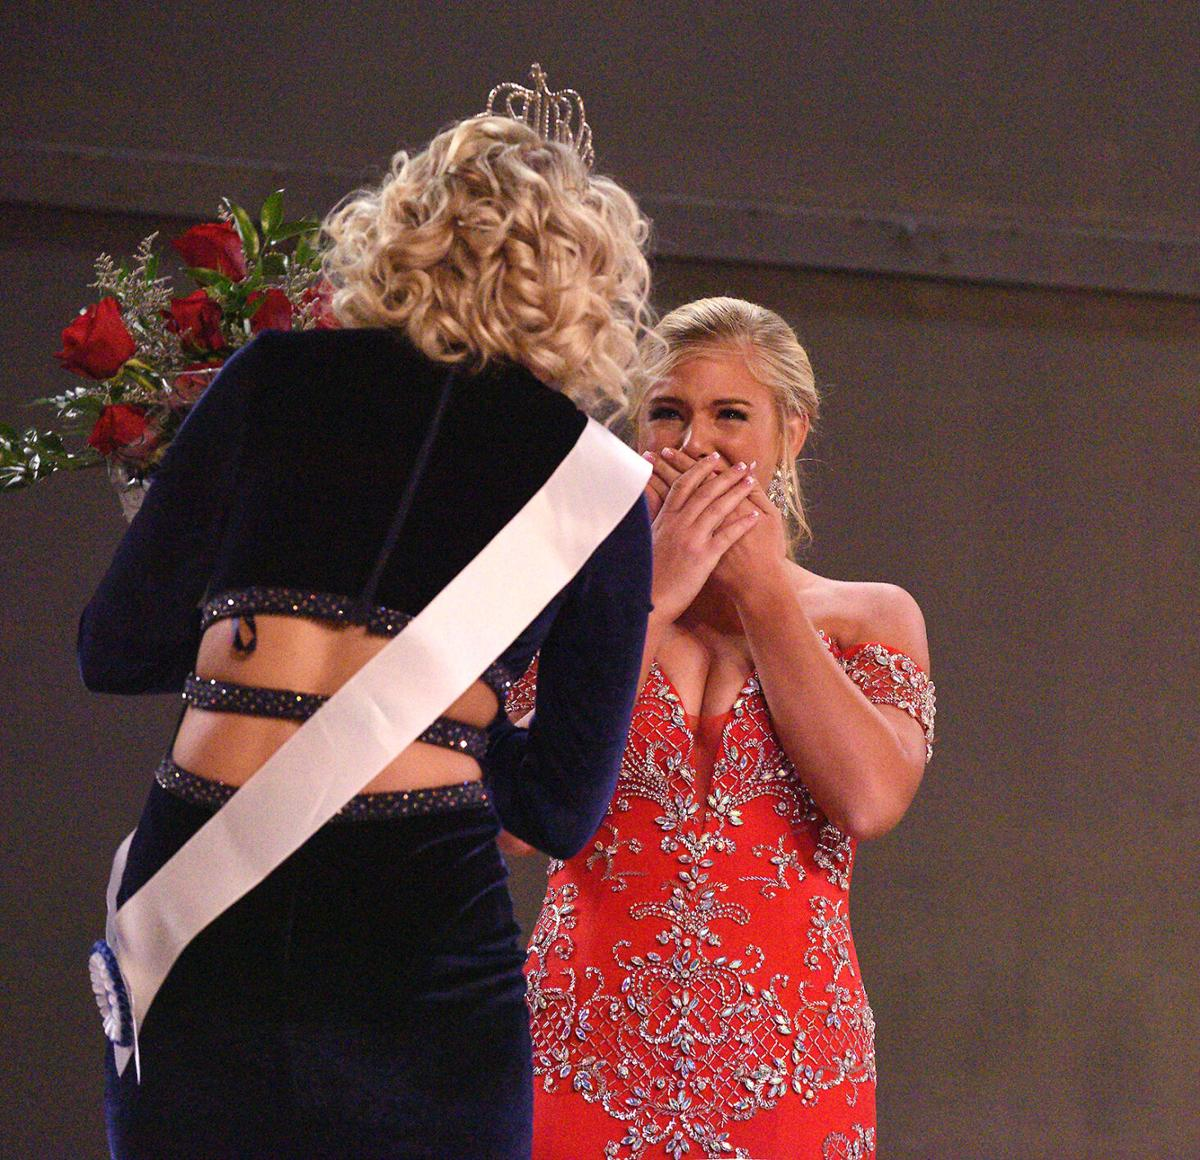 Ashley Mann crowned fair queen